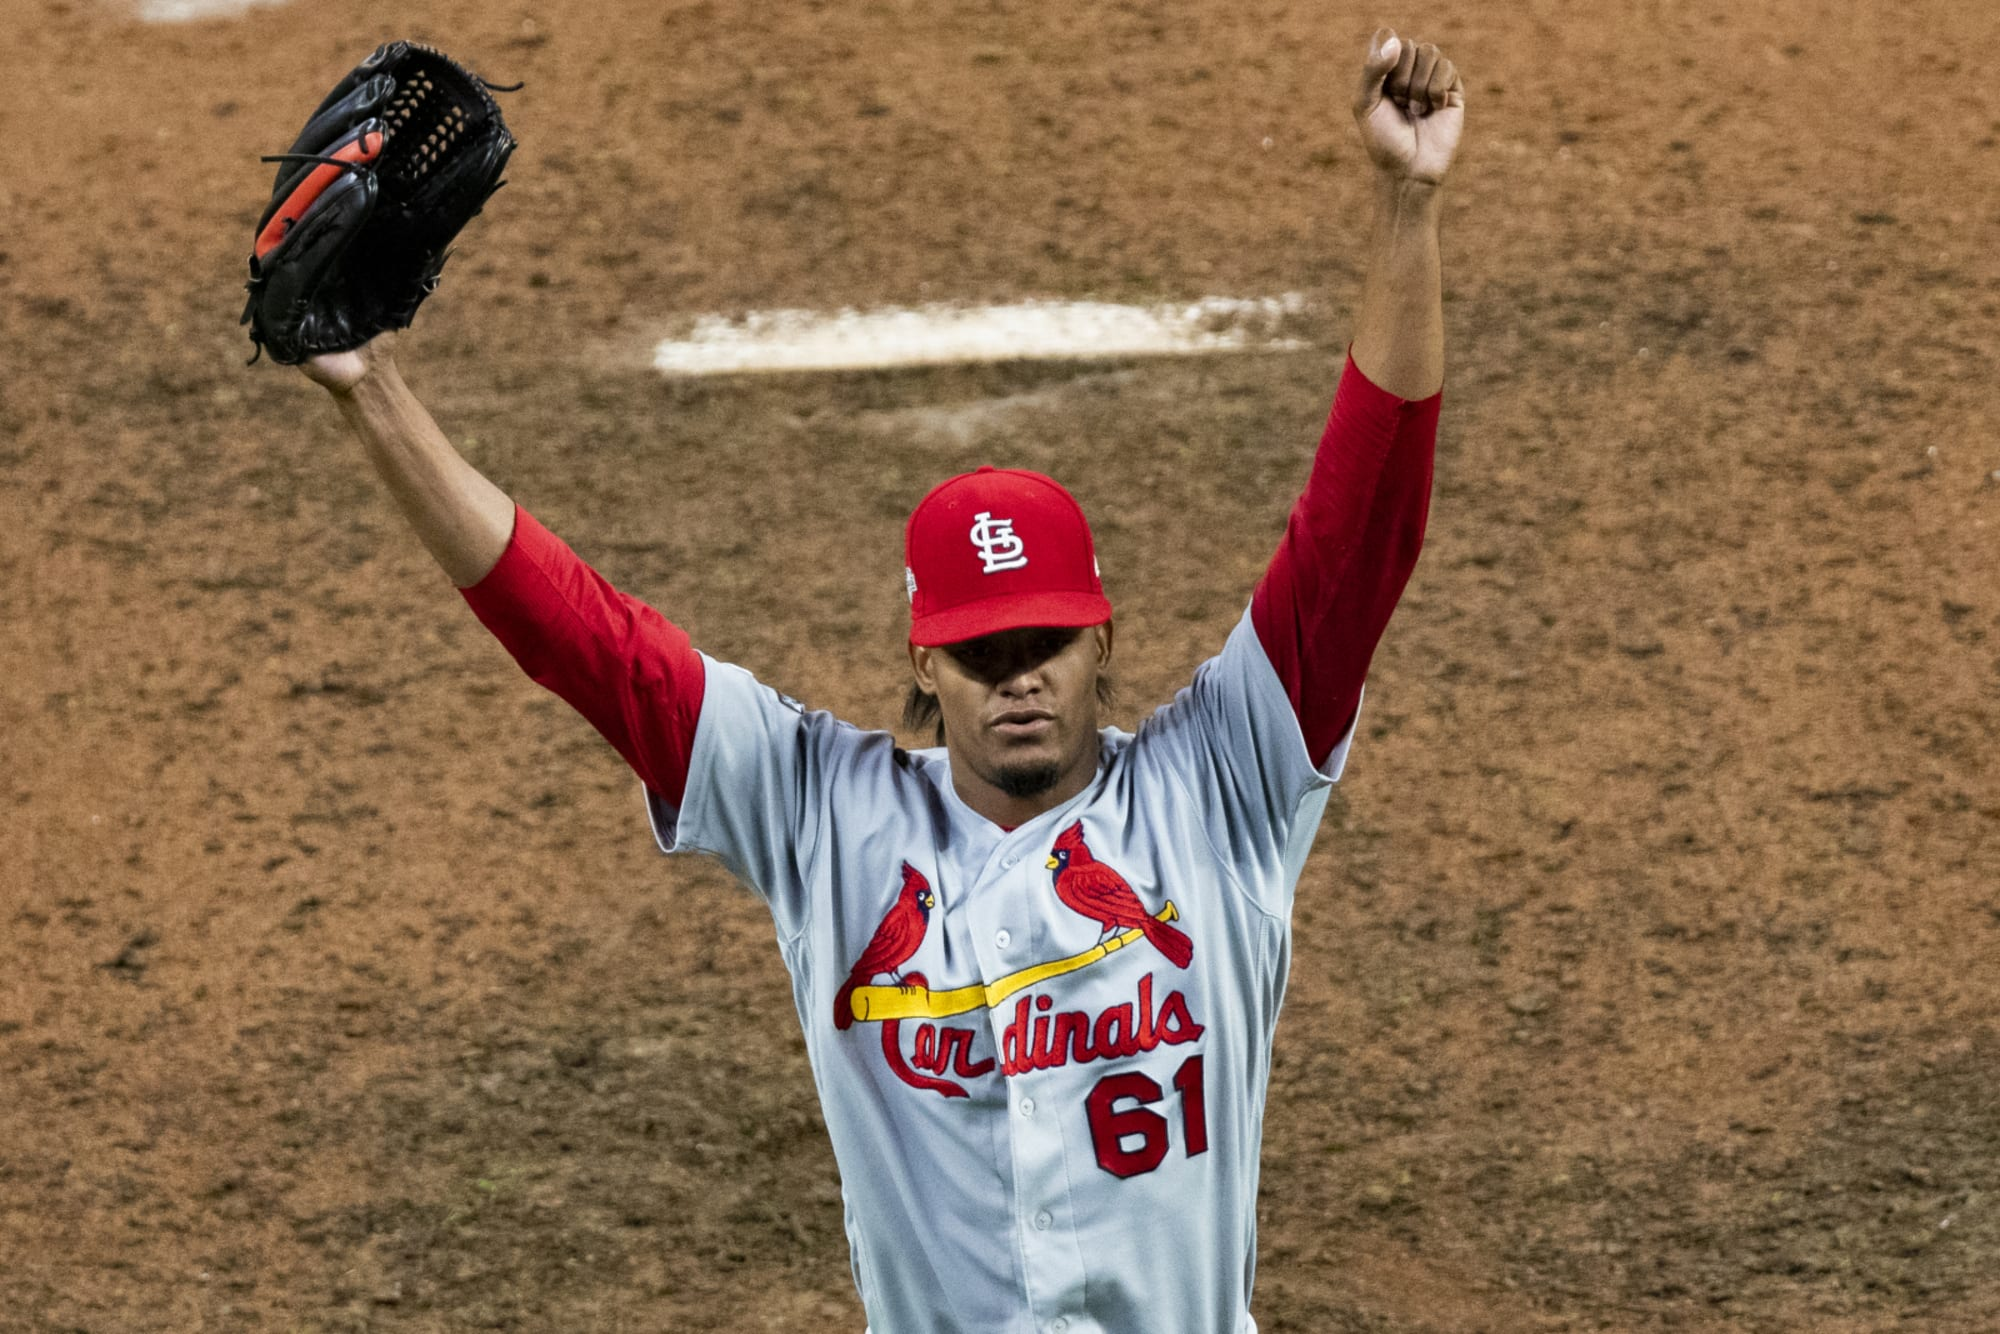 St. Louis Cardinals adjust roster and prepare to resume play